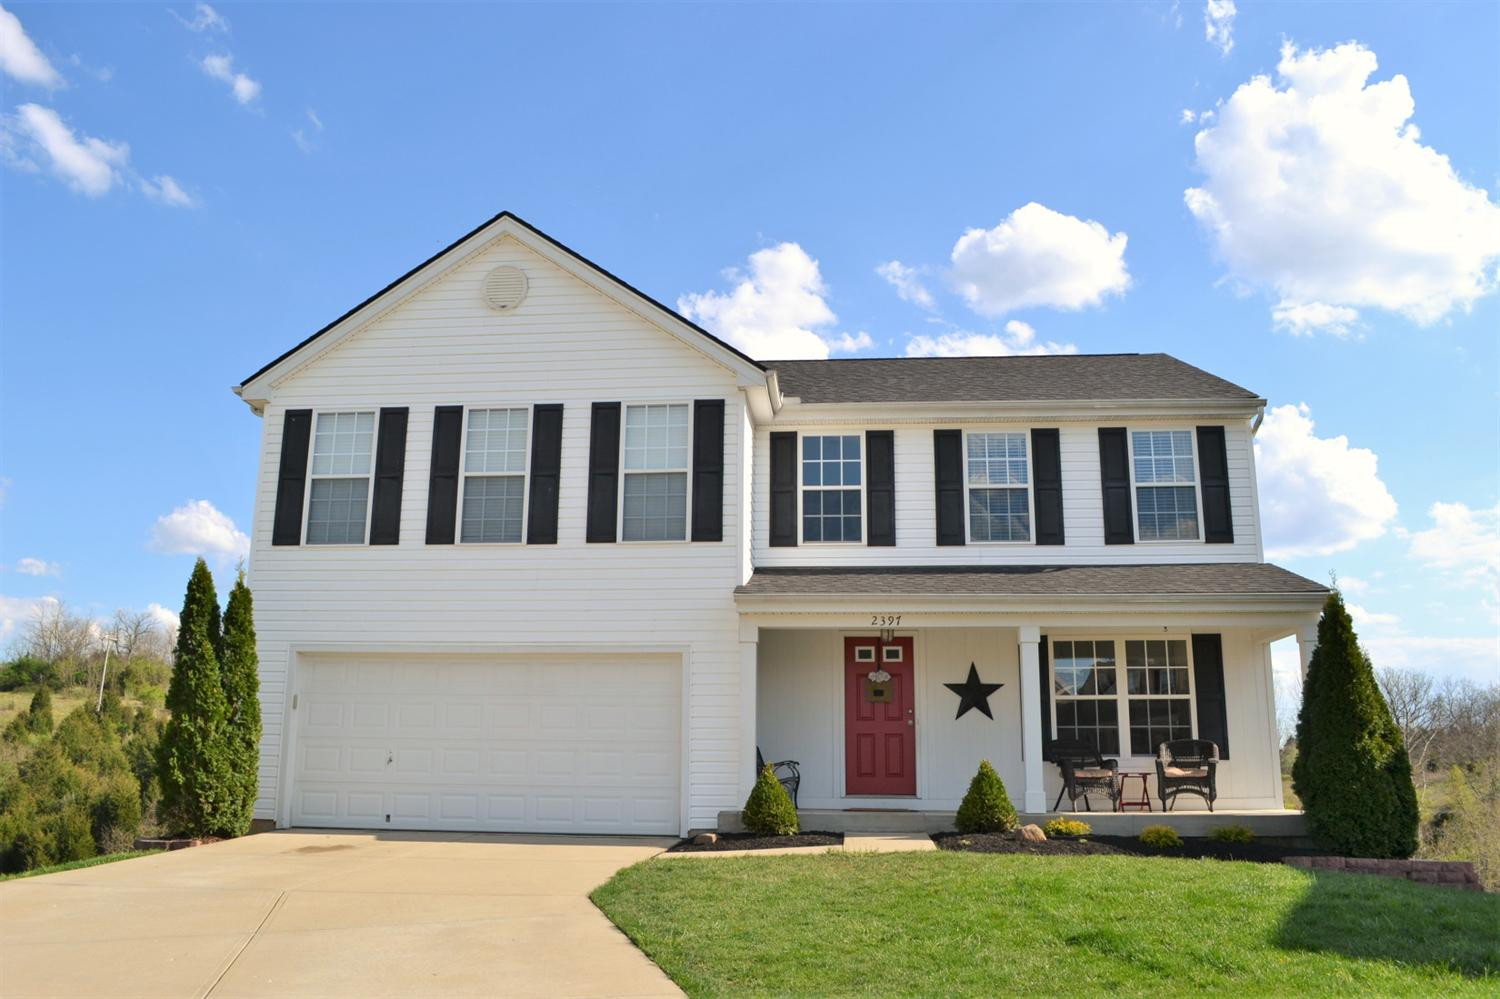 Photo 1 for 2397 Hickorywood Ct Alexandria, KY 41001